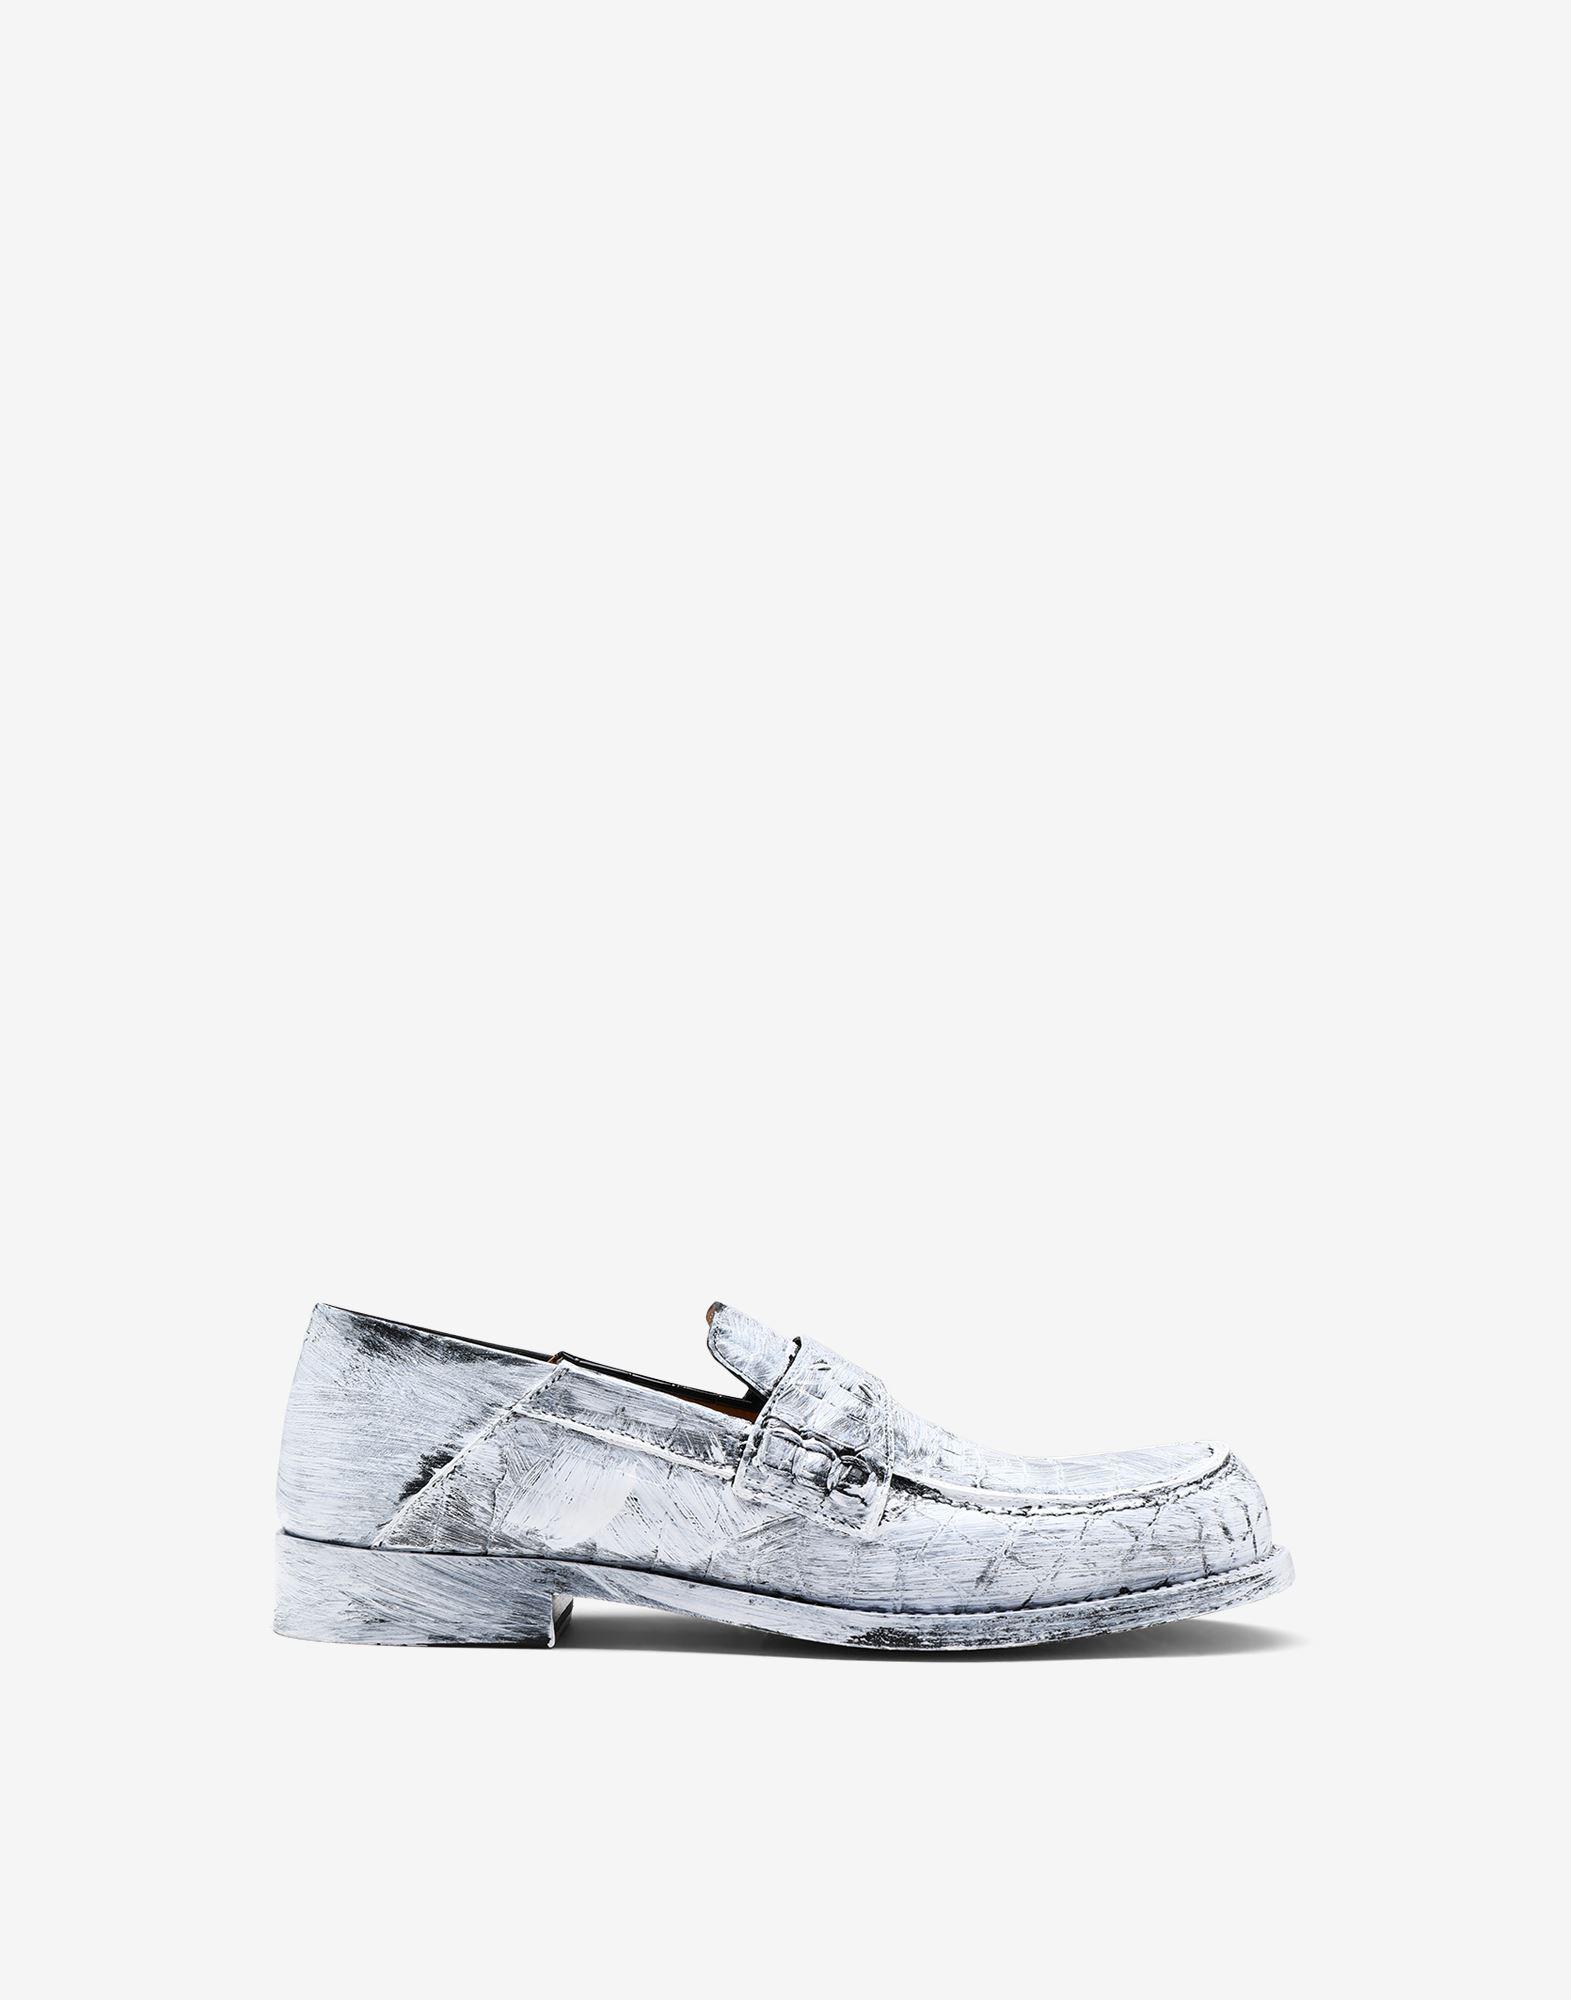 Camden bianchetto loafers